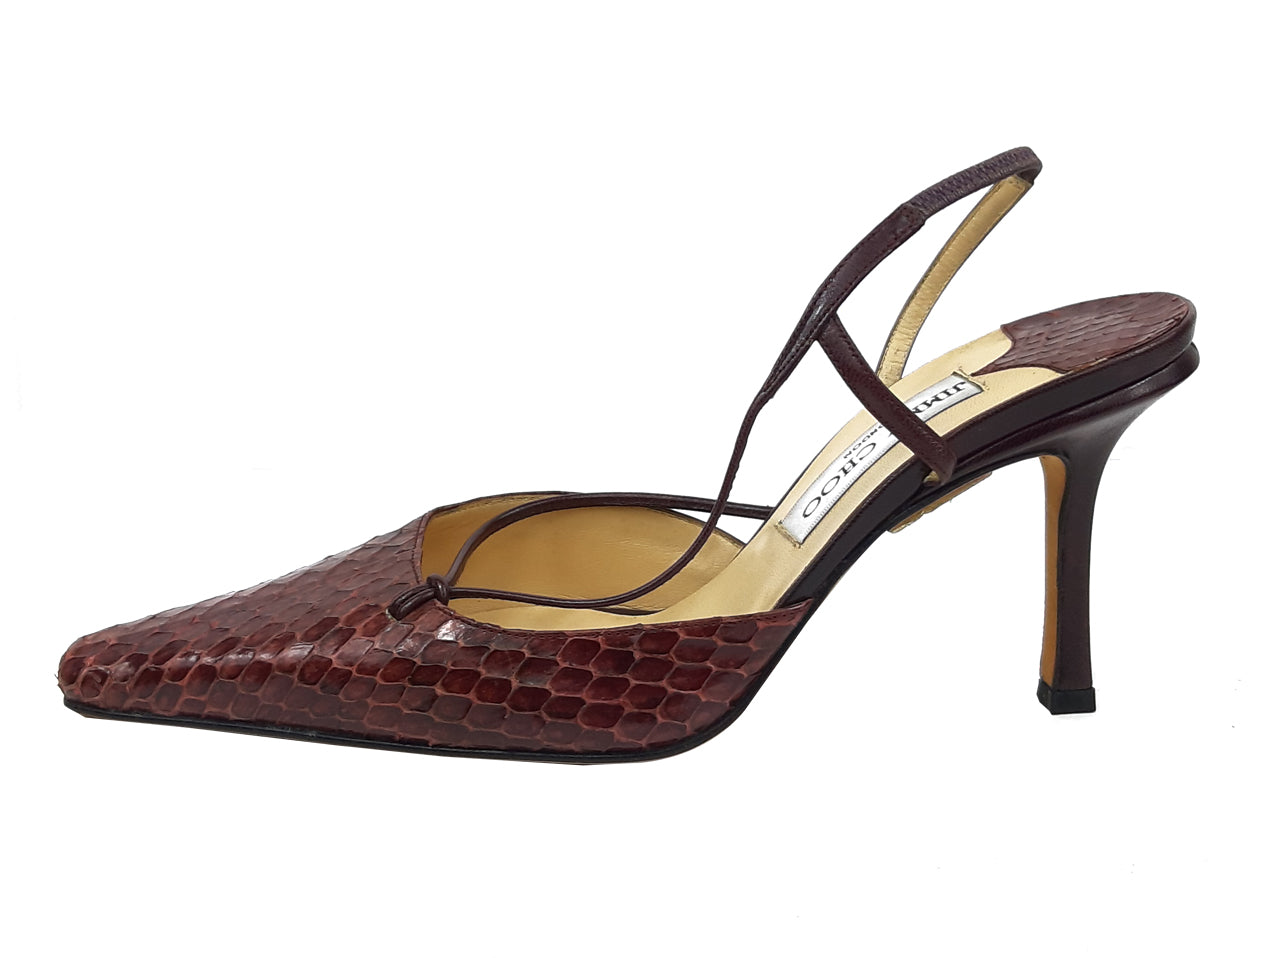 Manolo Blahnik Exotic Leather Brown Sandals Size 37 (EU)